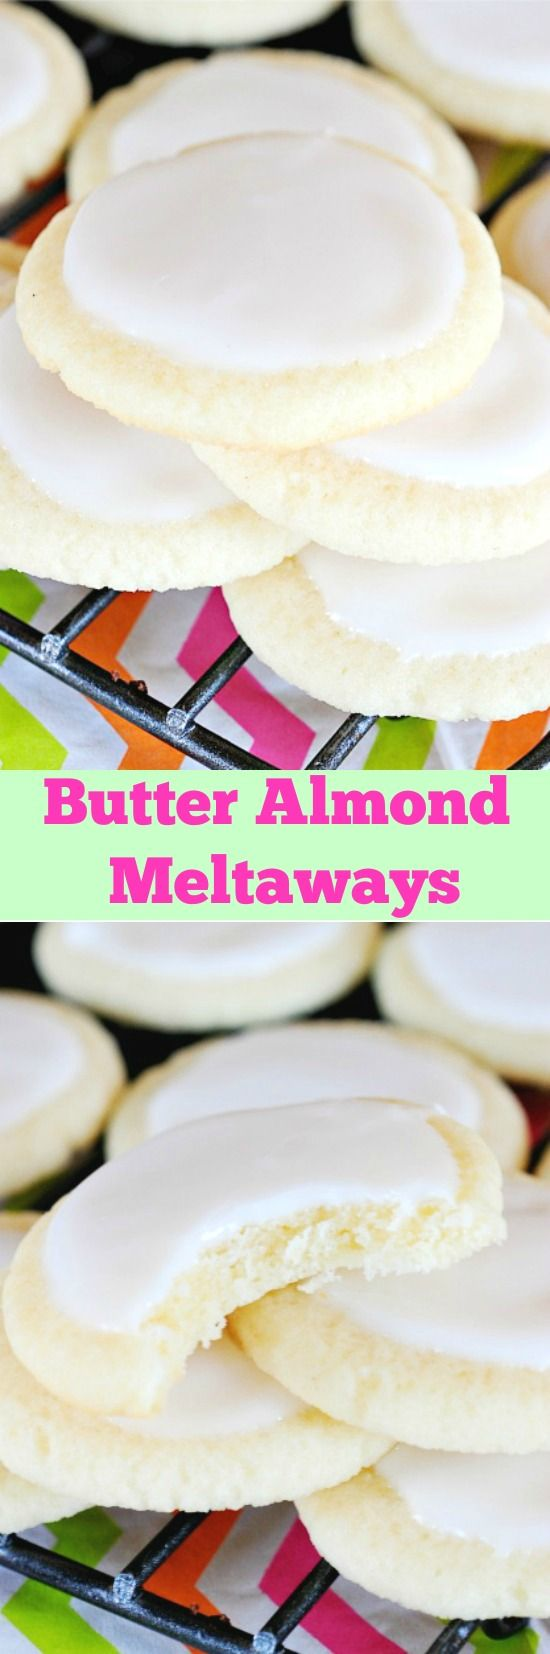 Glazed Butter Almond Meltaway Cookies light, delicate, melt in your mouth cookies. Good luck eating just one.